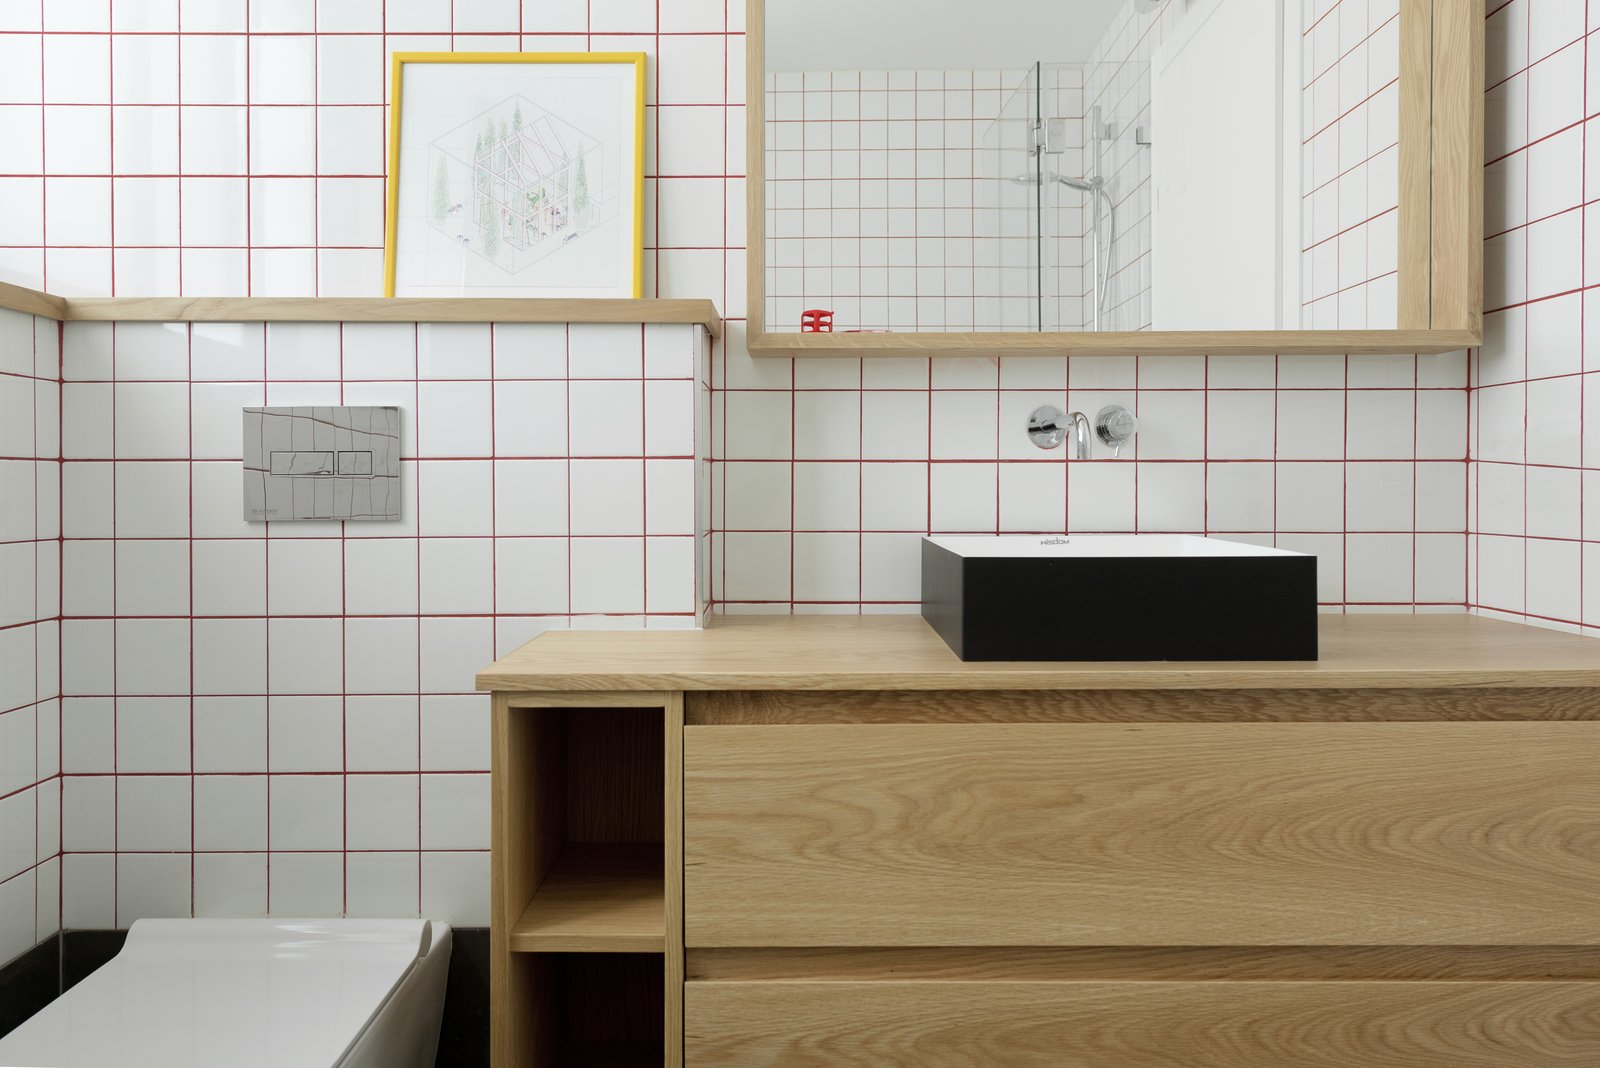 Bath Room, Vessel Sink, One Piece Toilet, Wood Counter, and Subway Tile Wall  Photo 9 of 14 in Graphic Design Guides an Apartment Renovation in Tel Aviv